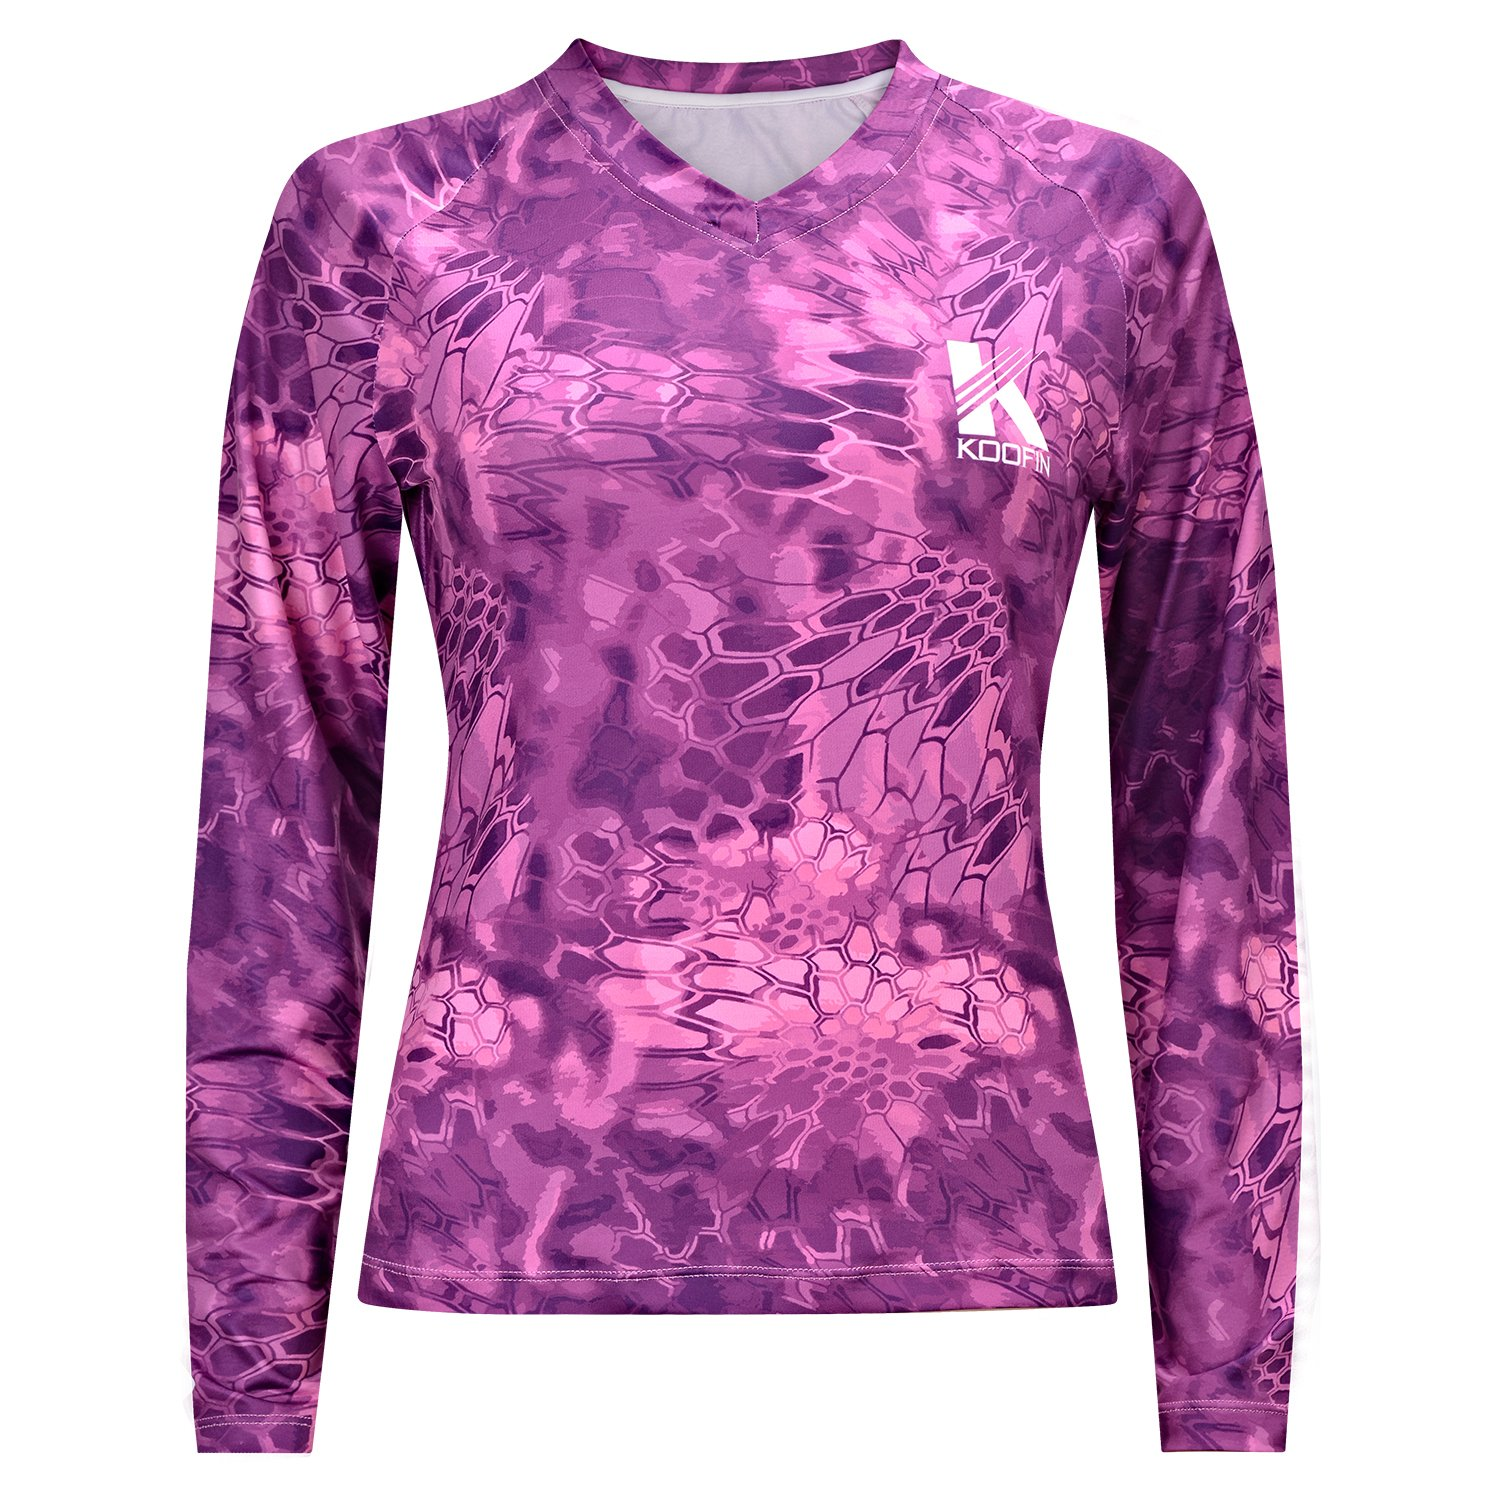 Koofin Women Rash Guard Slim Fit Performance Long Sleeve Shirt Fishing Running Training UV Sun Protection UPF50 Swimsuit Top